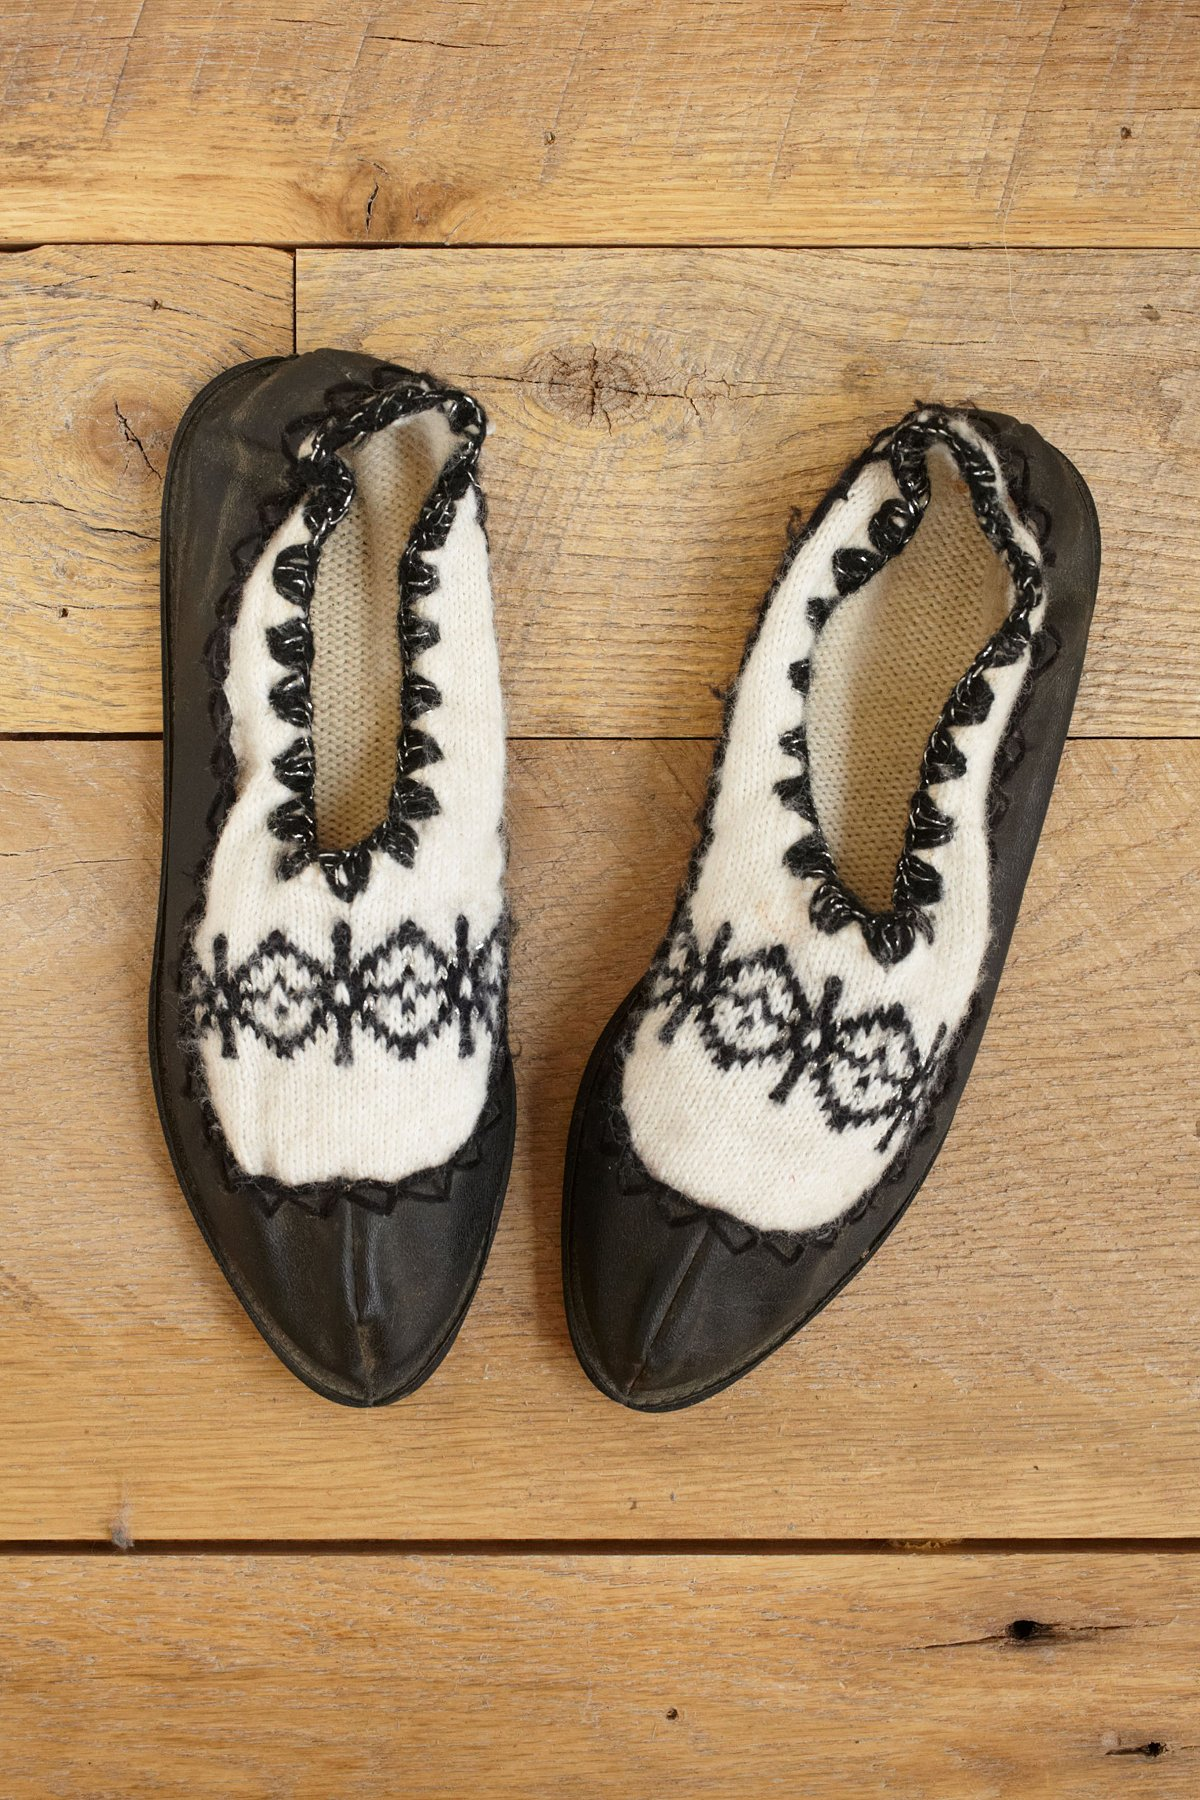 Vintage Knit Slippers